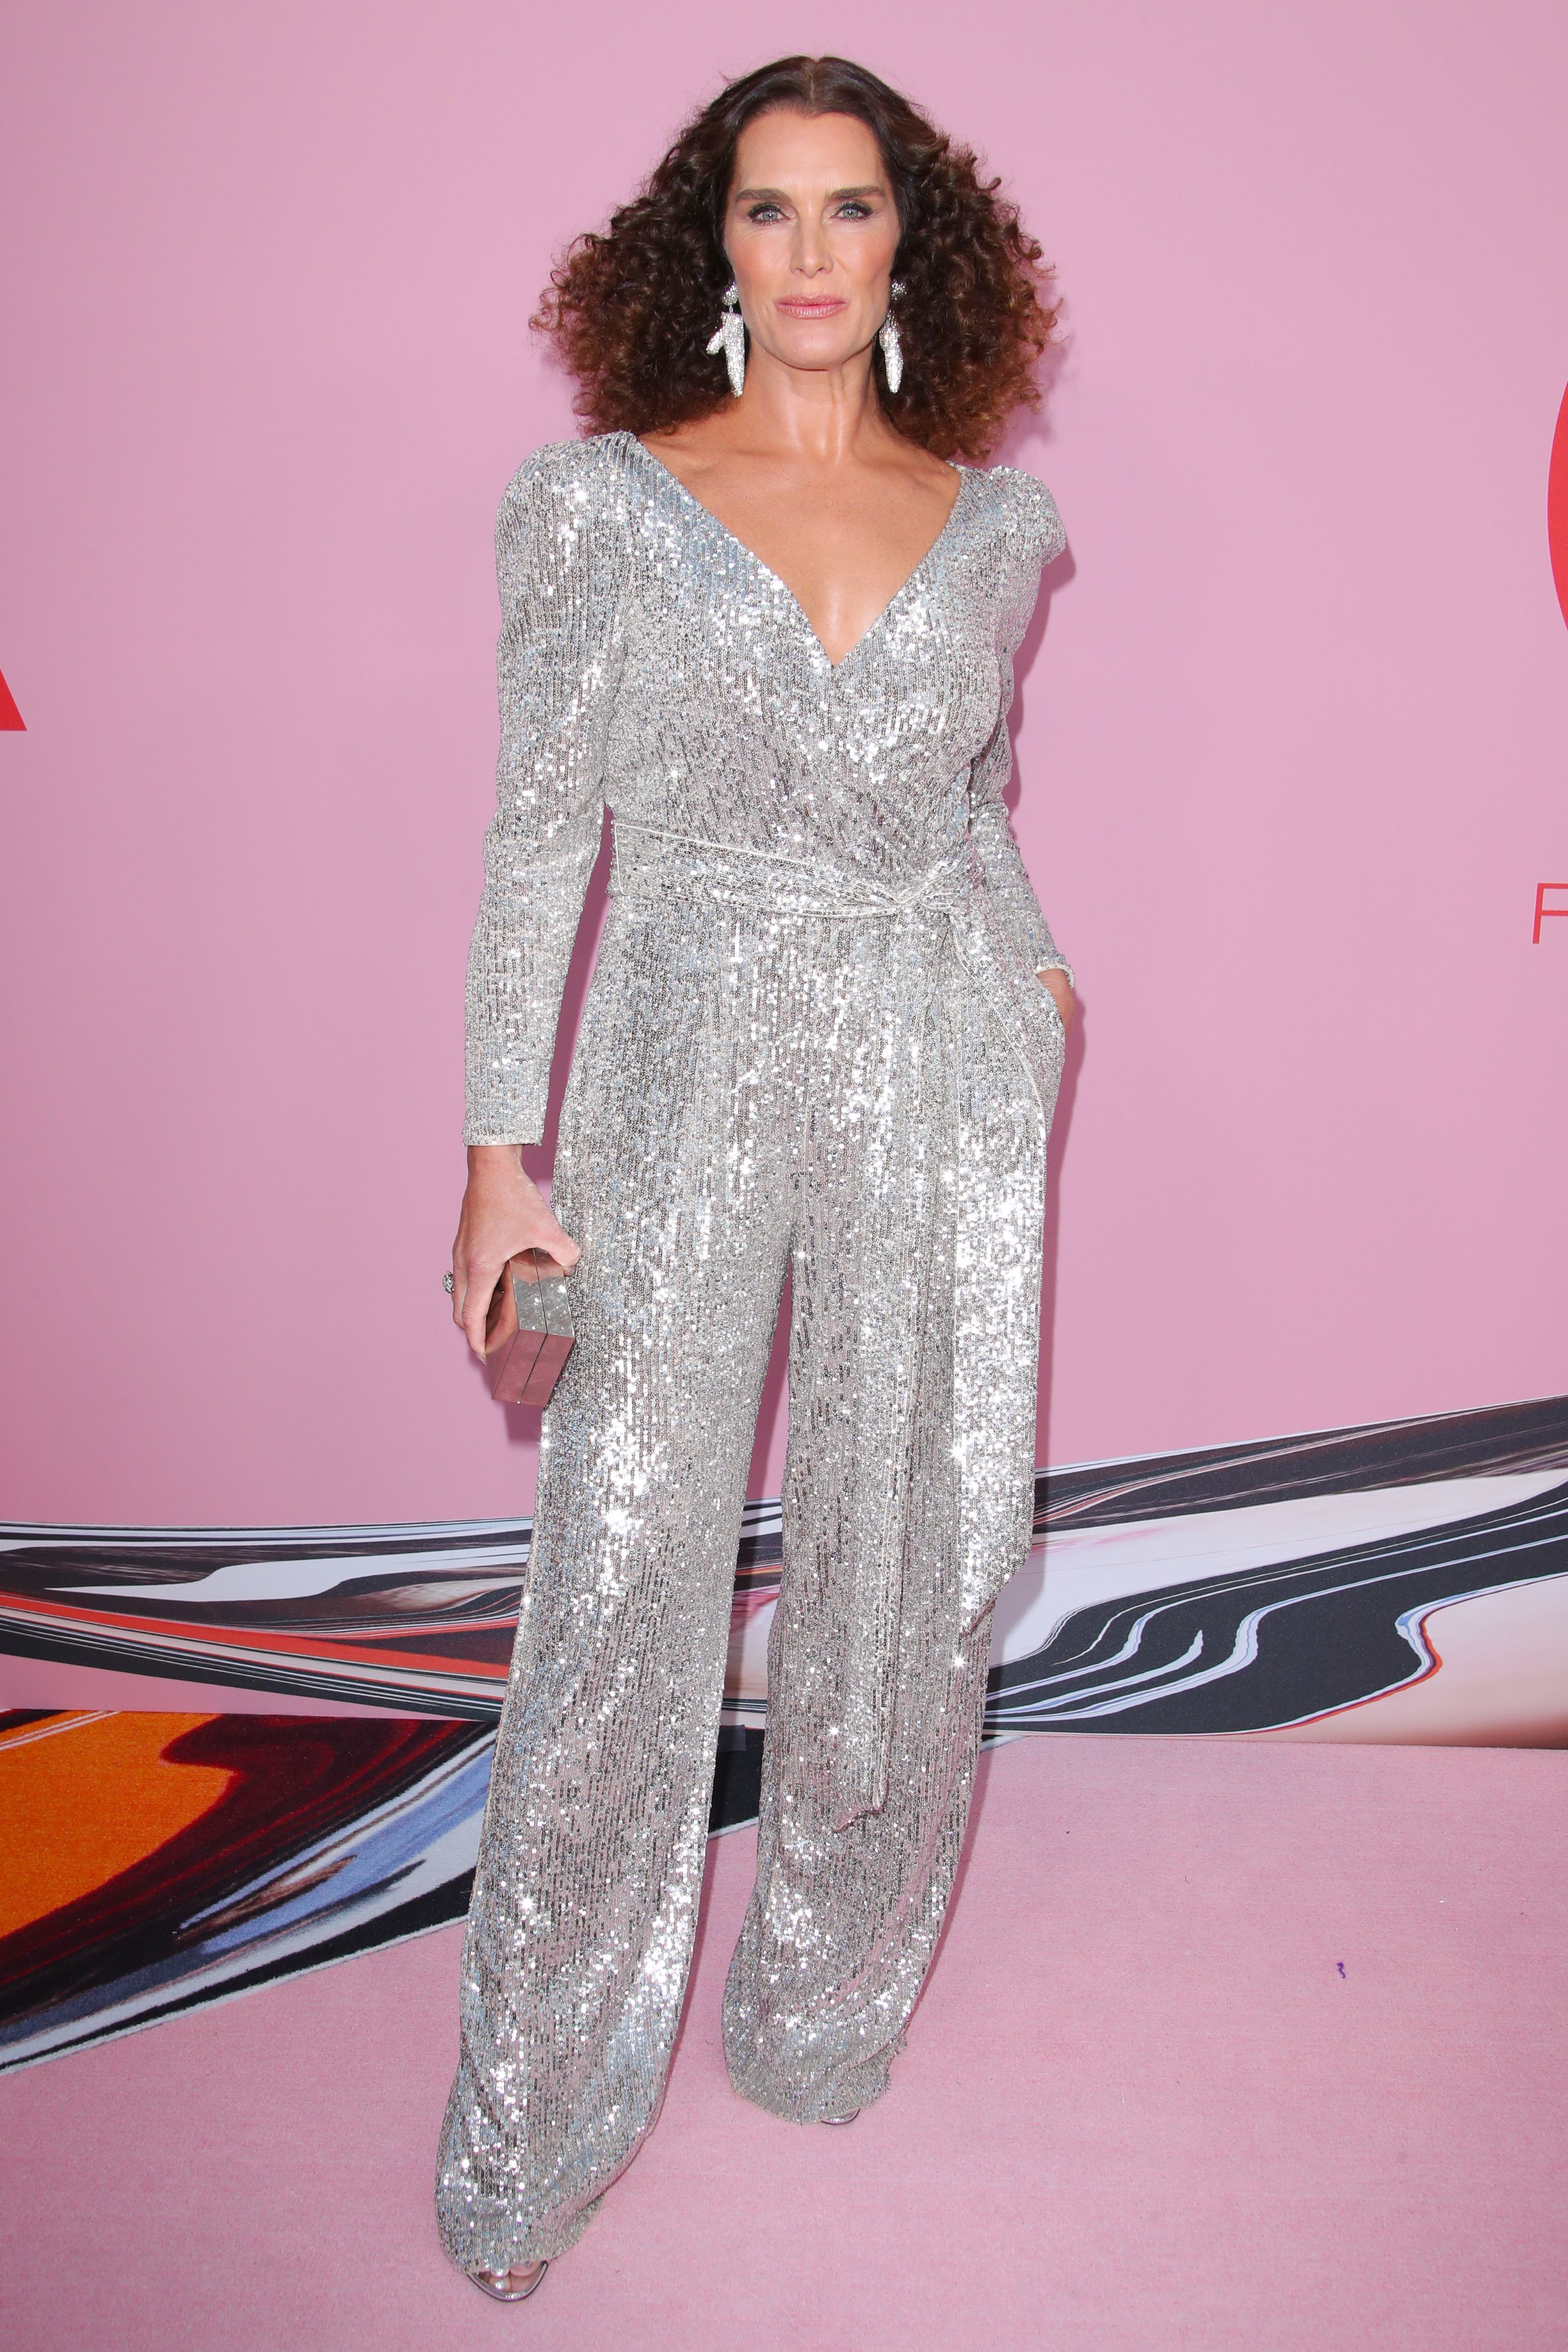 Brooke Shields attends the CFDA Fashion Awards in New York City on June 3, 2019.